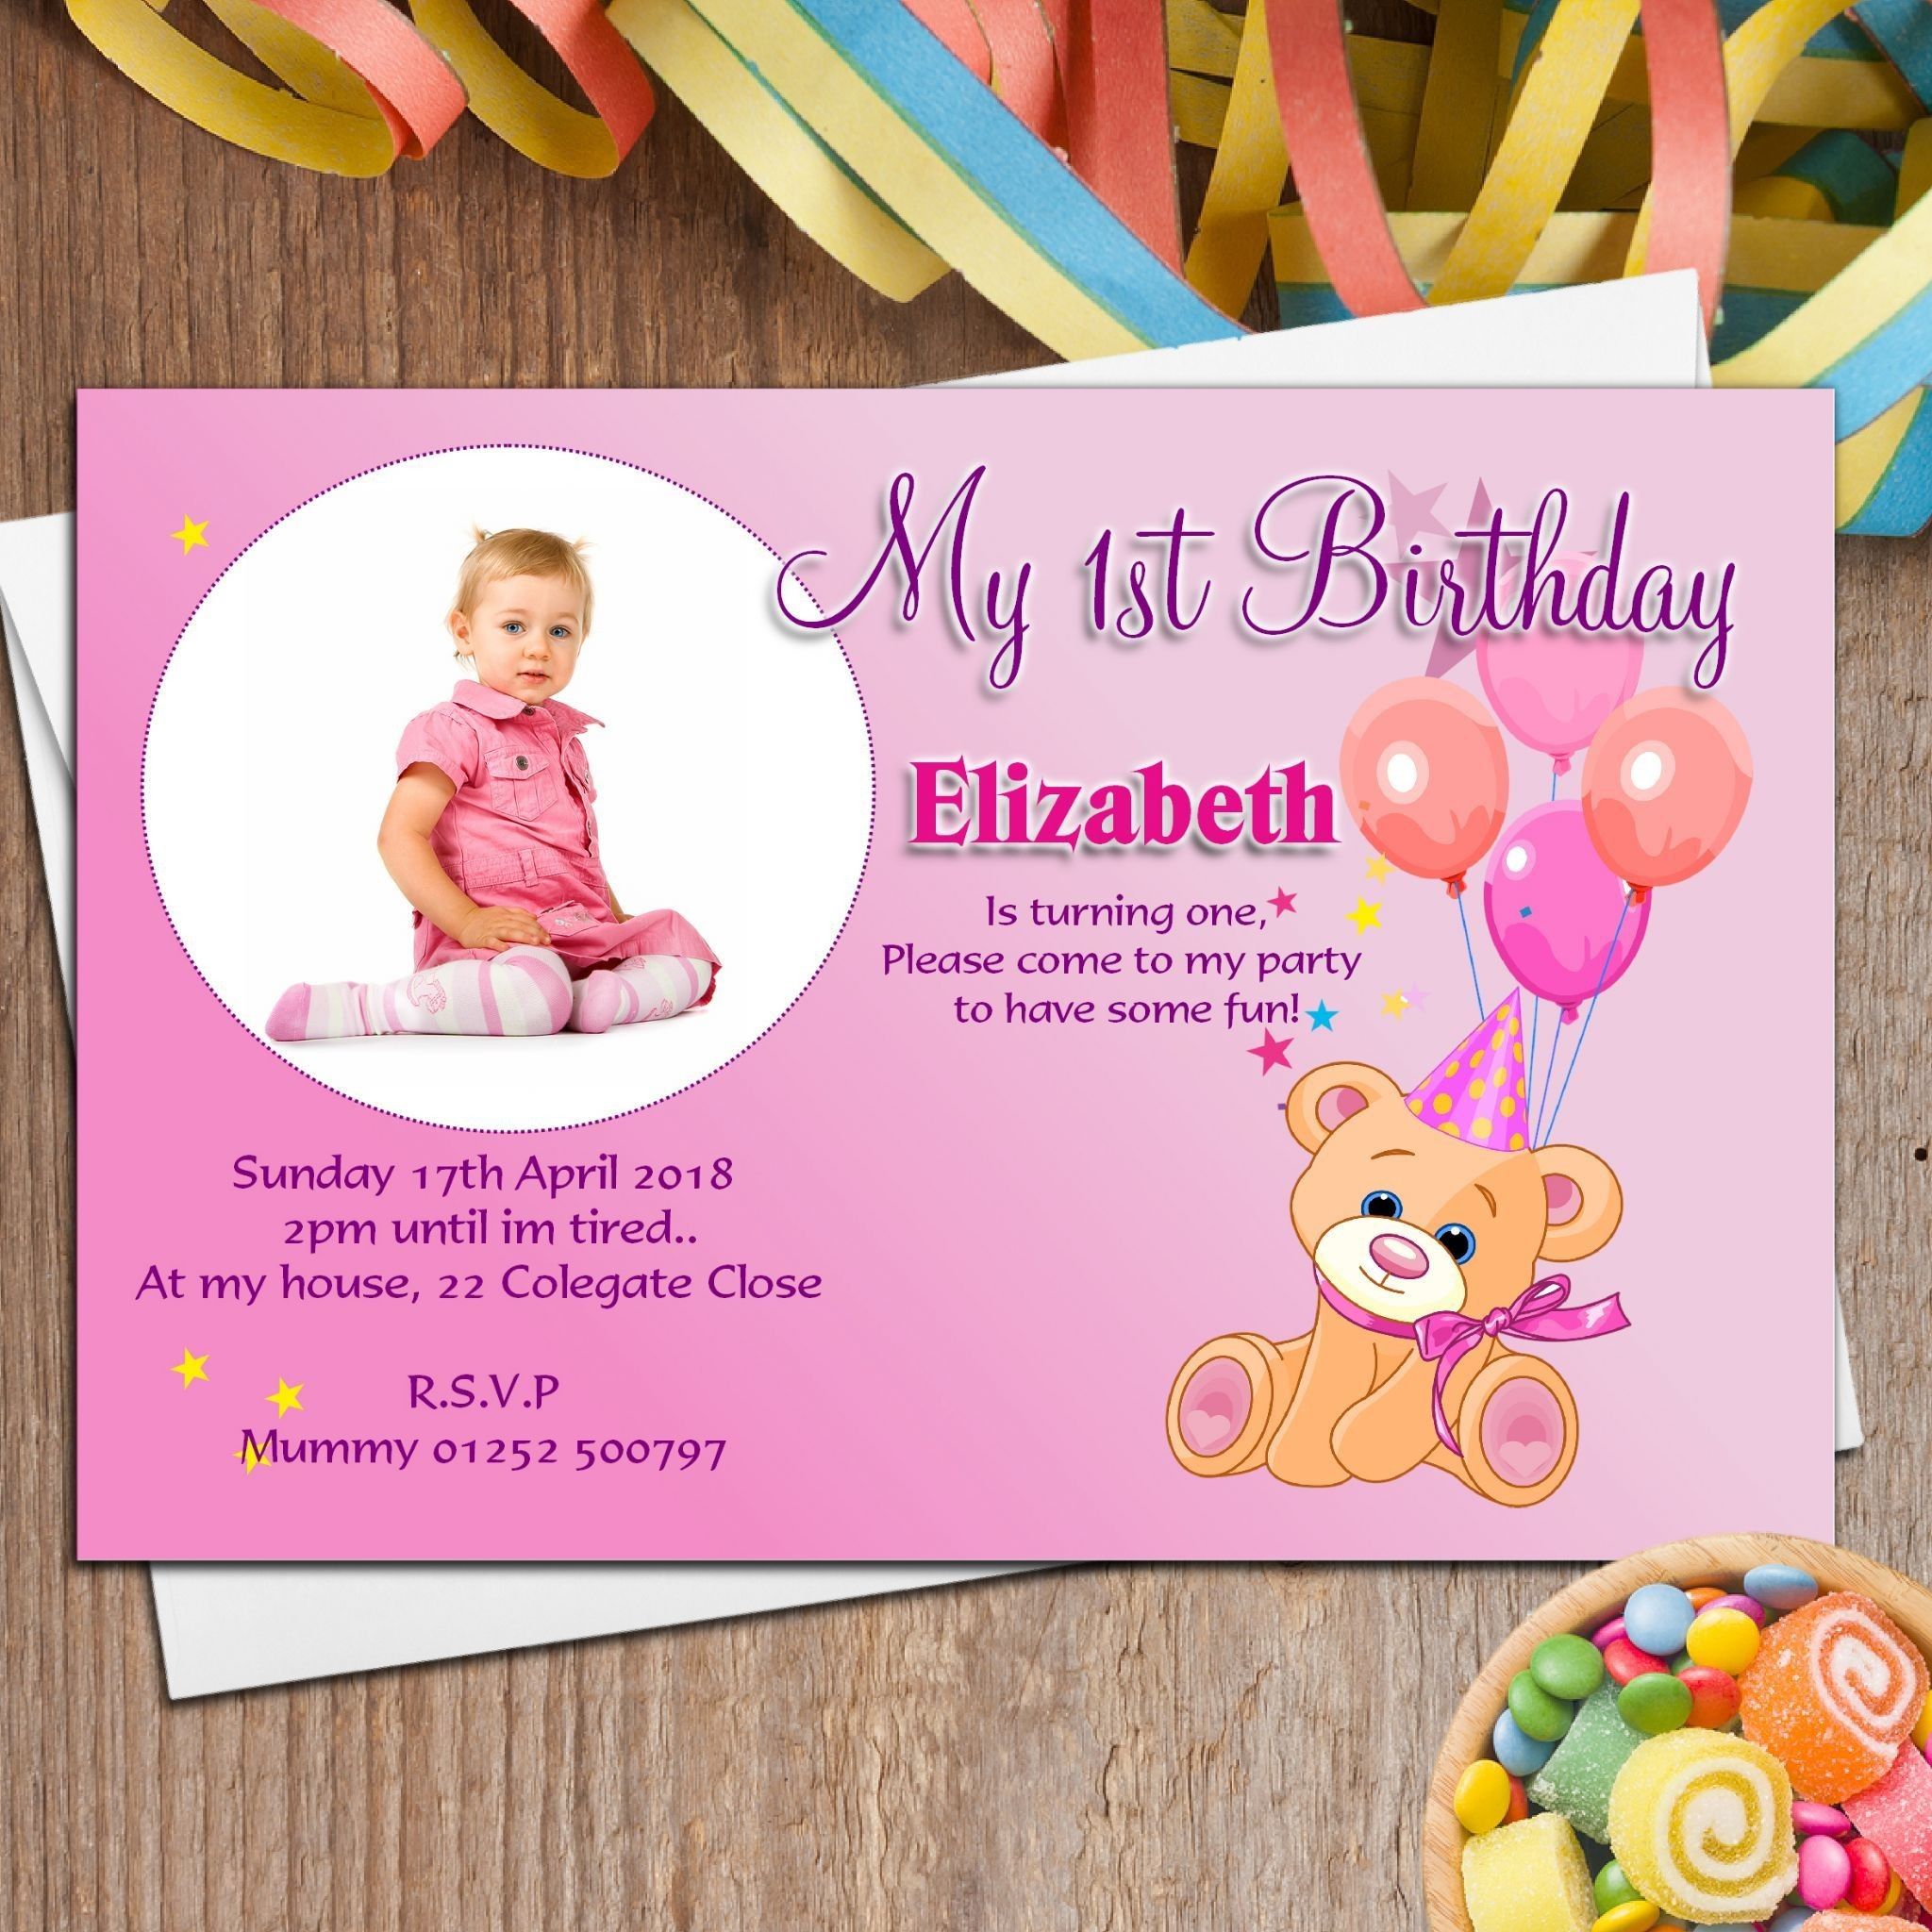 my daughter birthday invitation sms ; invitation-for-birthday-sms-inspirationa-1st-birthday-invitation-cards-for-baby-boy-in-india-of-invitation-for-birthday-sms